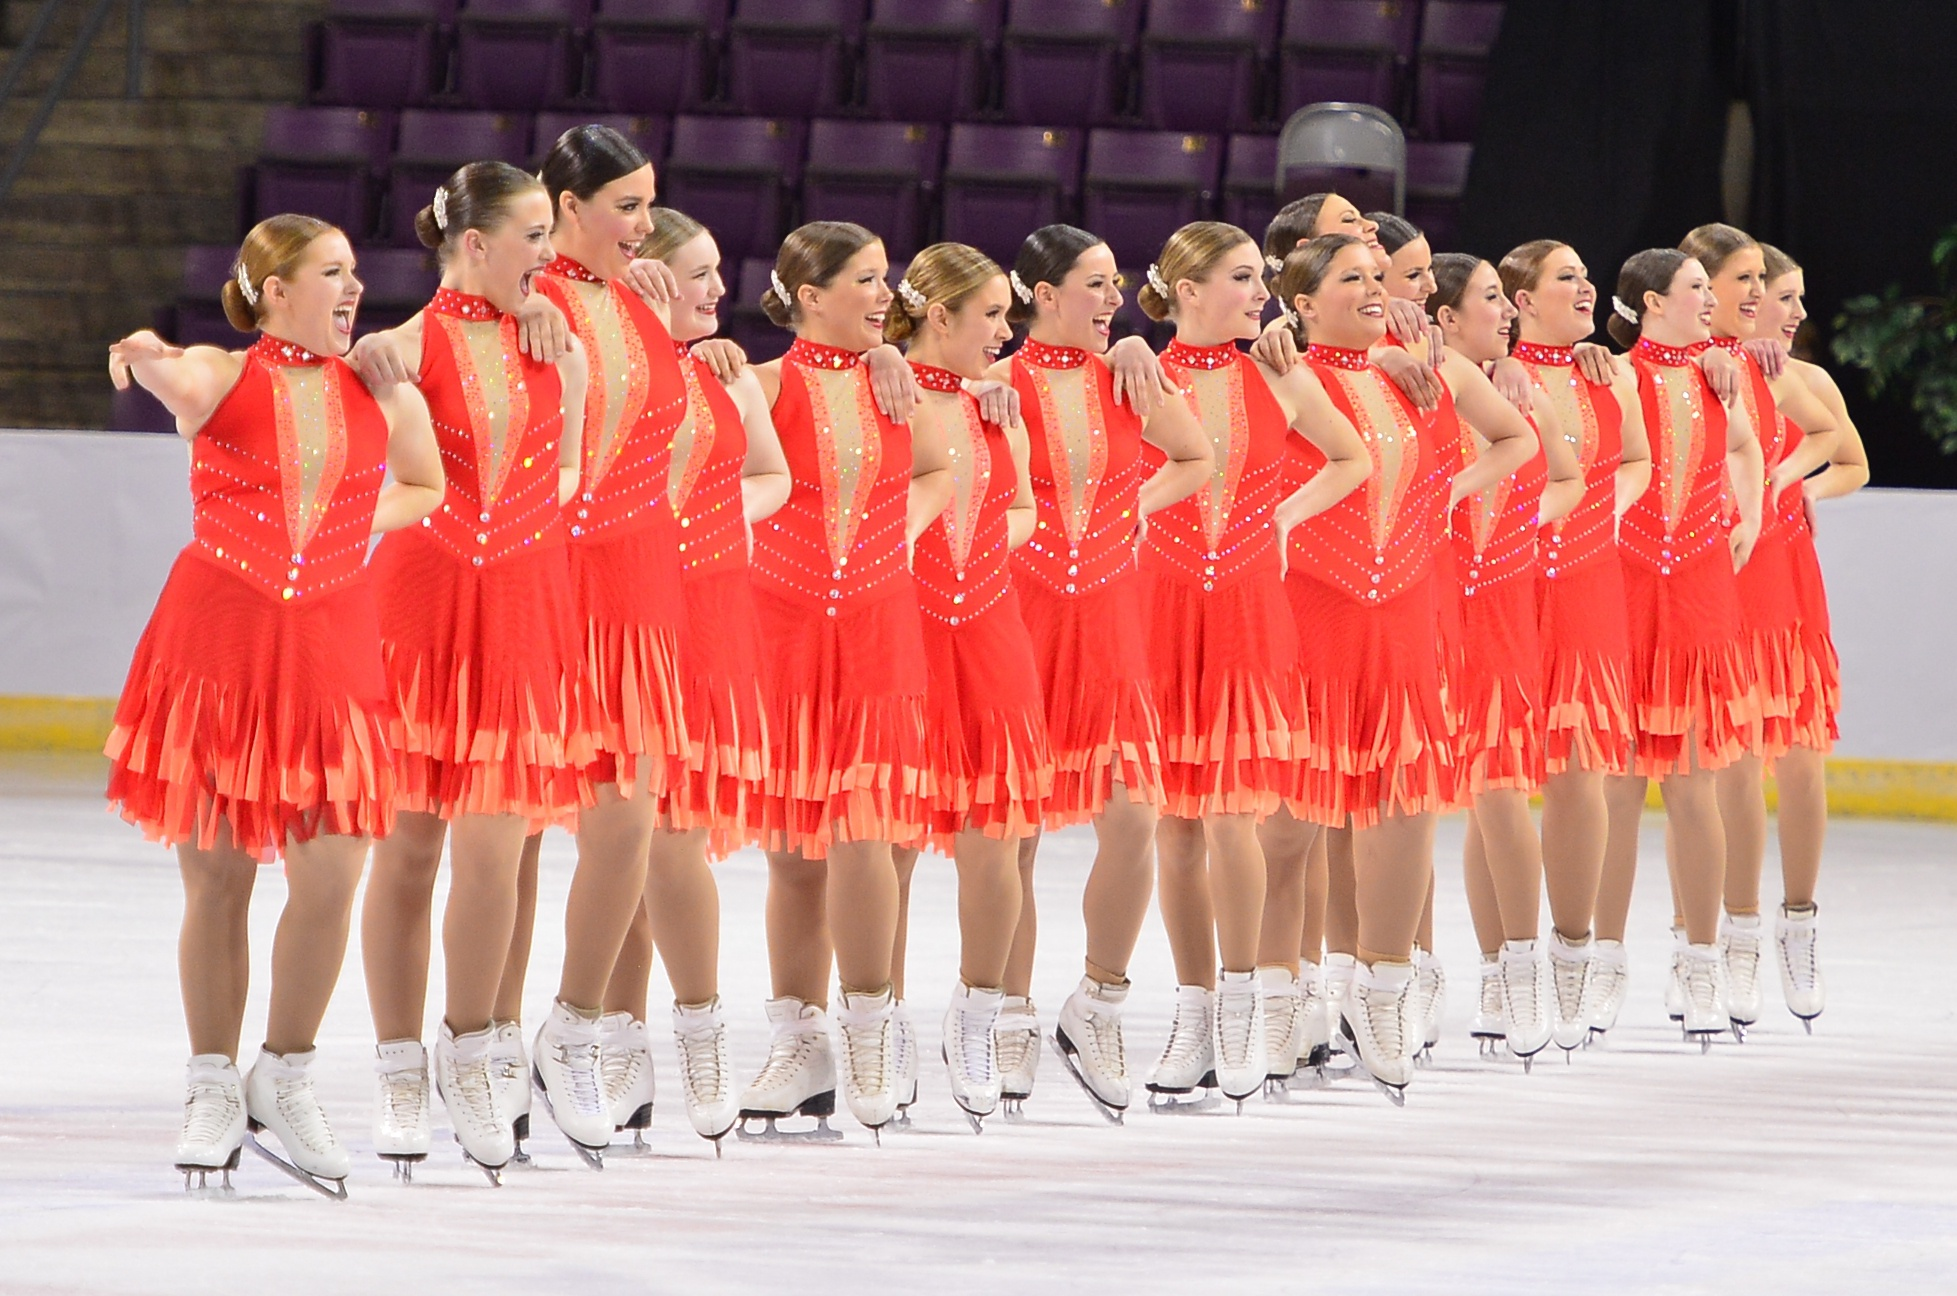 flattering dance, skate, cheer costumes for the whole team